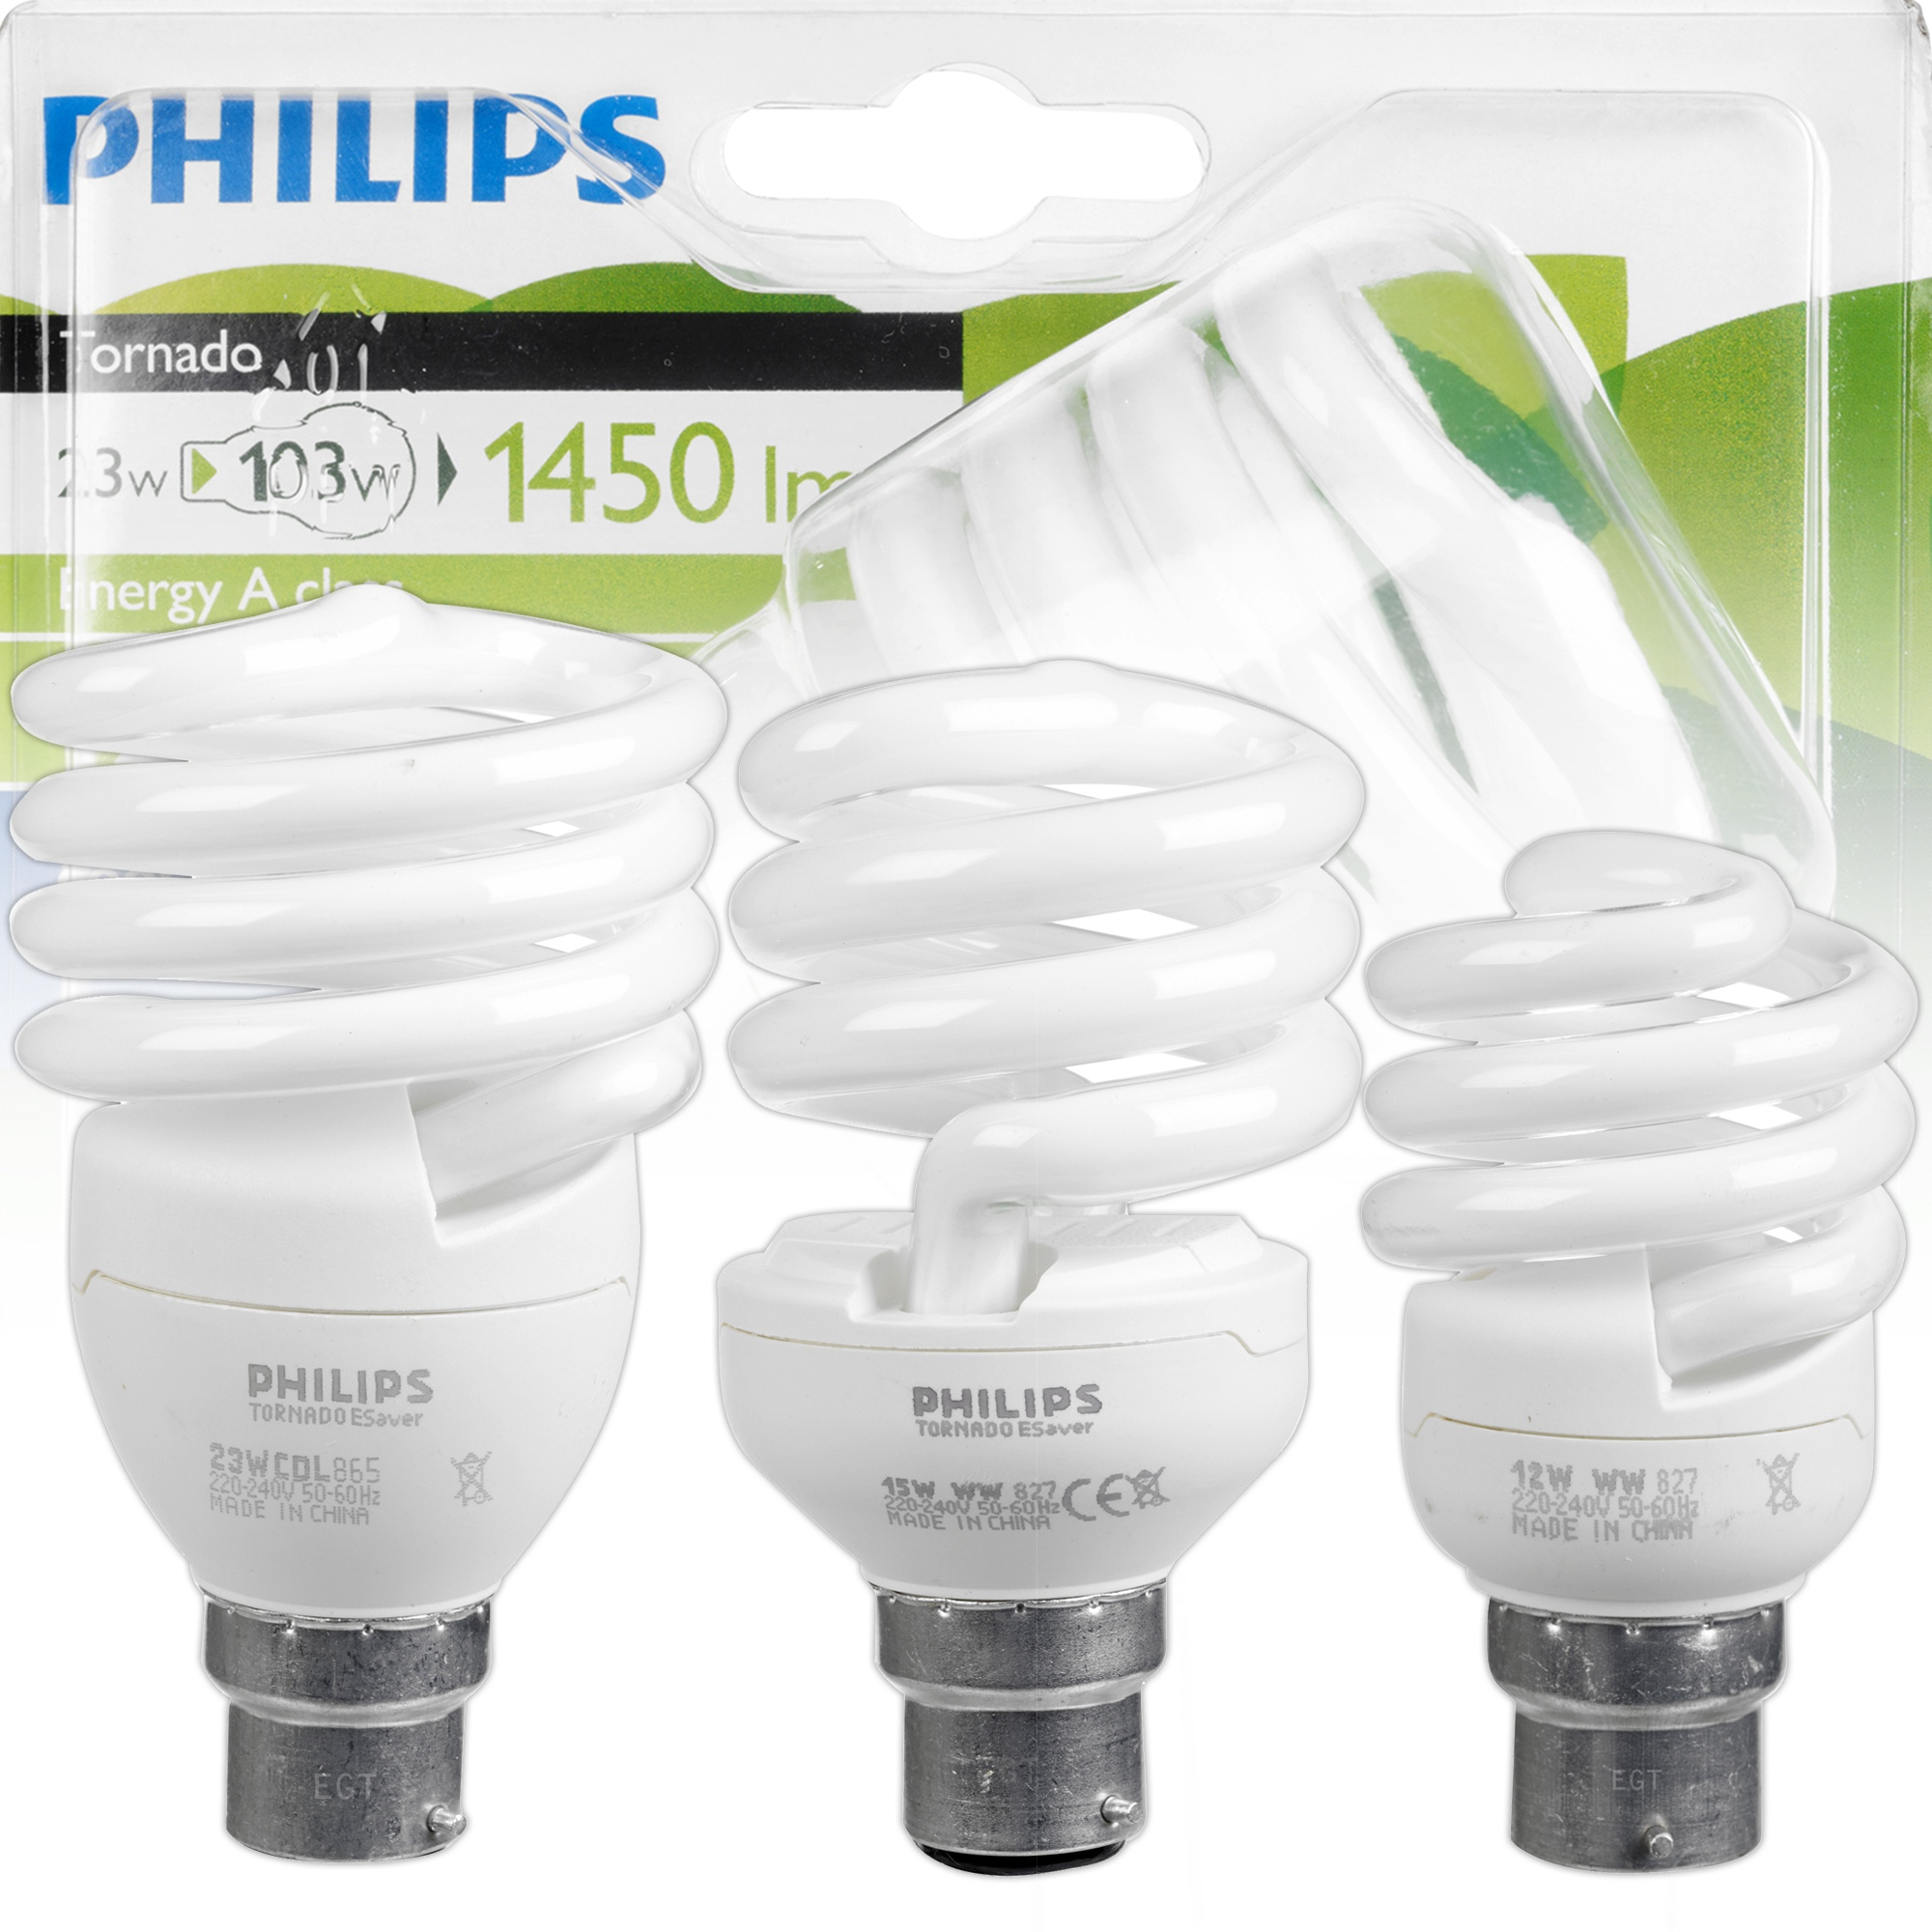 Philips Tornado Energy Saving 12w 15w 23w B22 Bayonet Cap Light Bulbs Spiral New Ebay